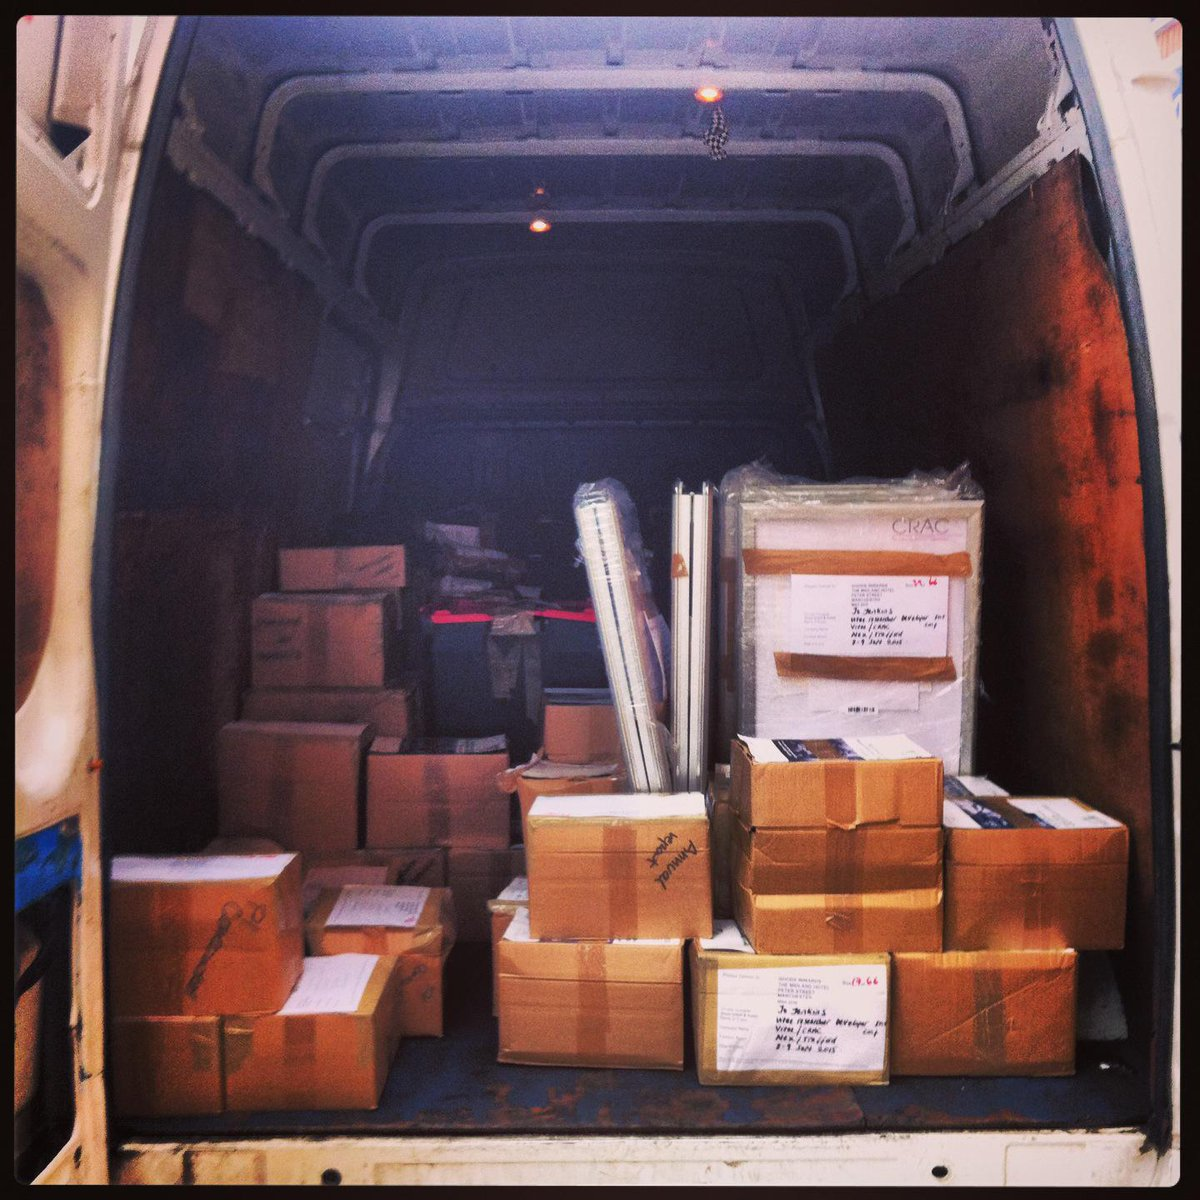 Truck-load of materials including NEW publications has left the building & is on its way to #vitae15 conf! Hurrah! :) http://t.co/9dba0taOOp